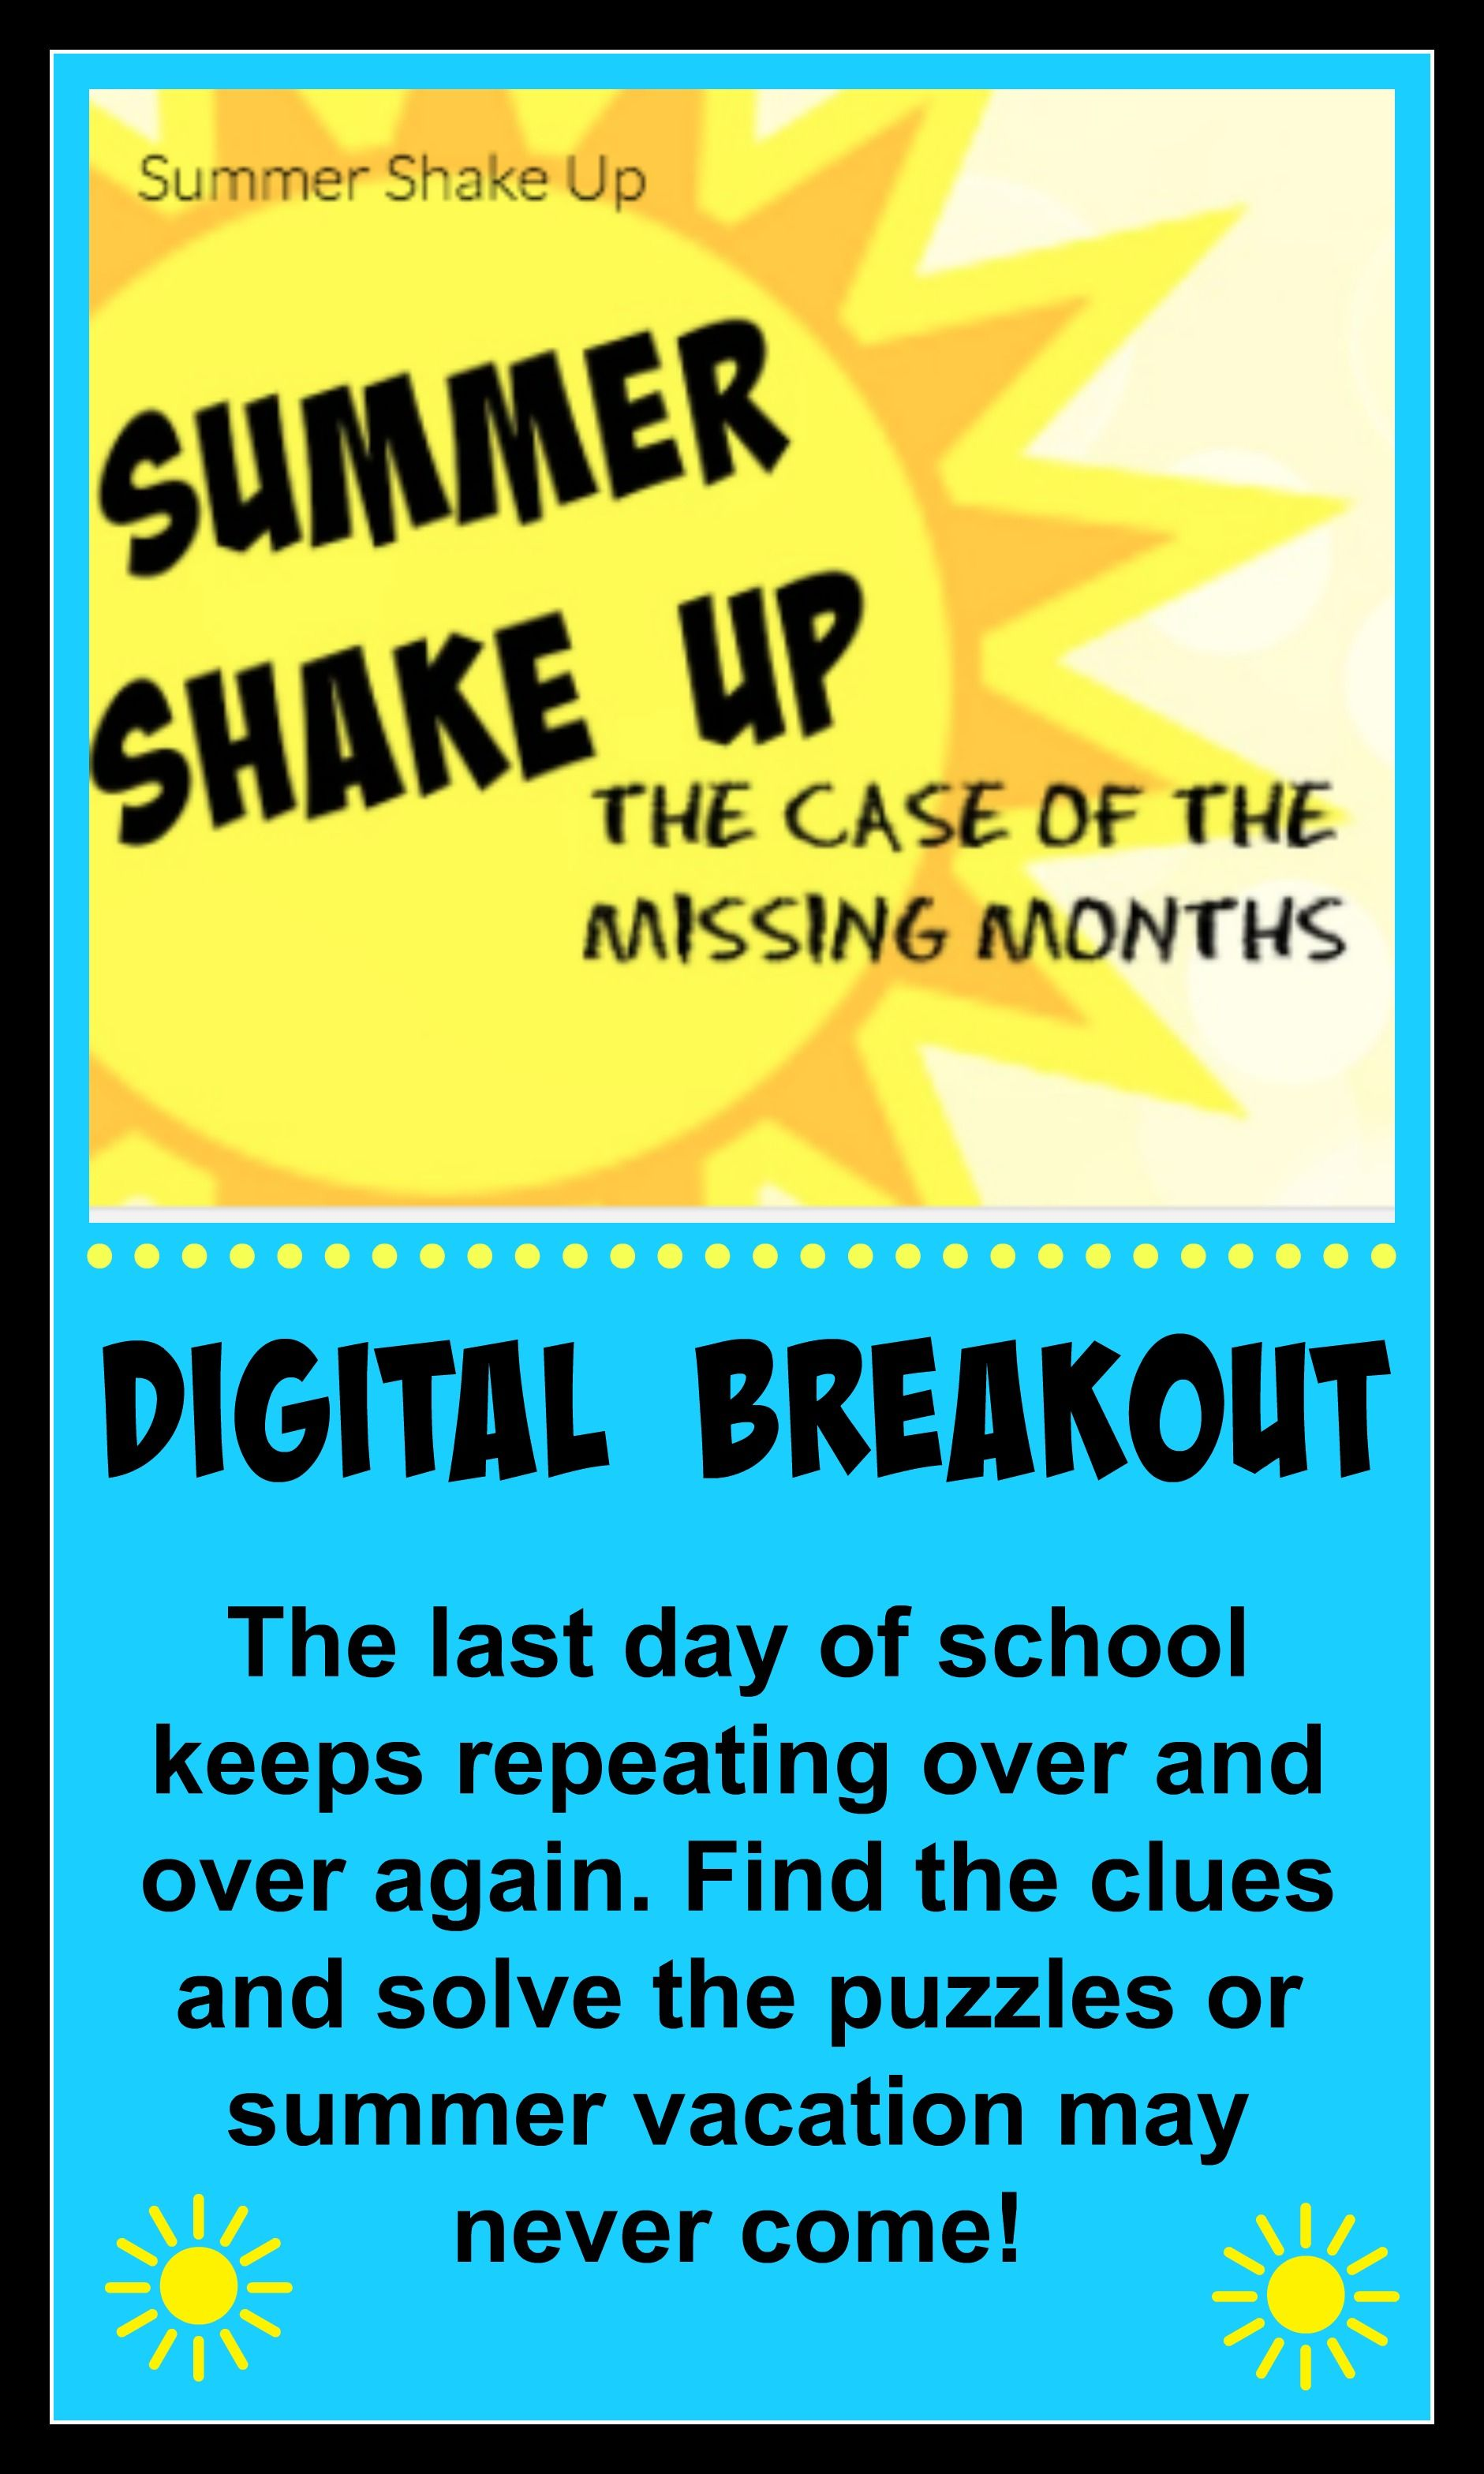 A Teachers Case Against Summer Vacation >> Summer Shake Up Digital Breakout Digital Activities For The